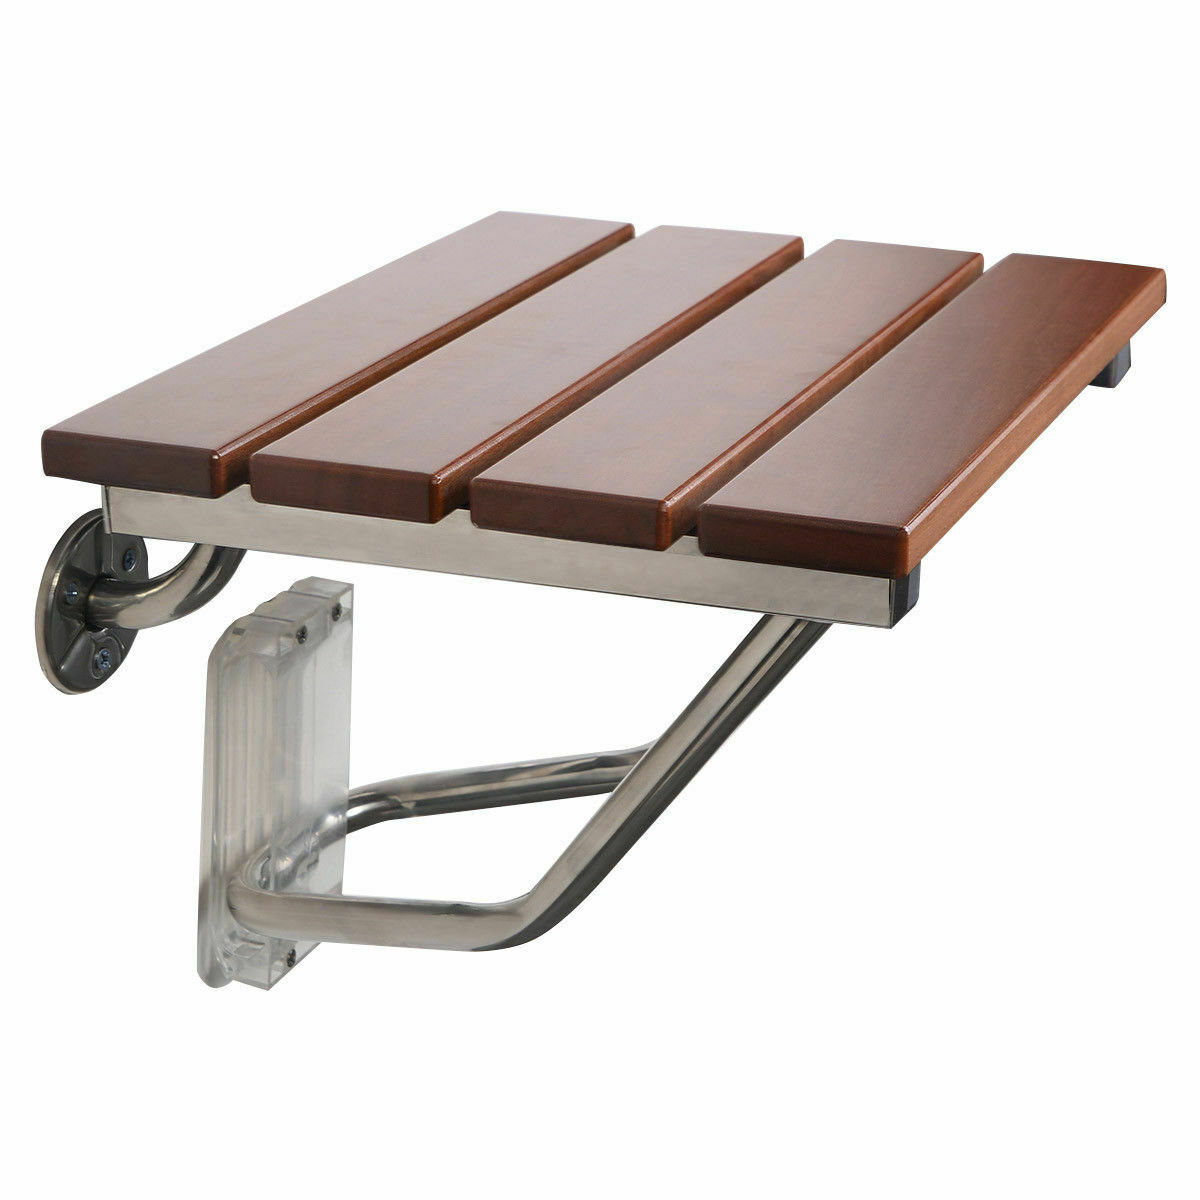 NEW FOLDING BATH Seat Bench Shower Chair Wall Mount Solid Wood ...